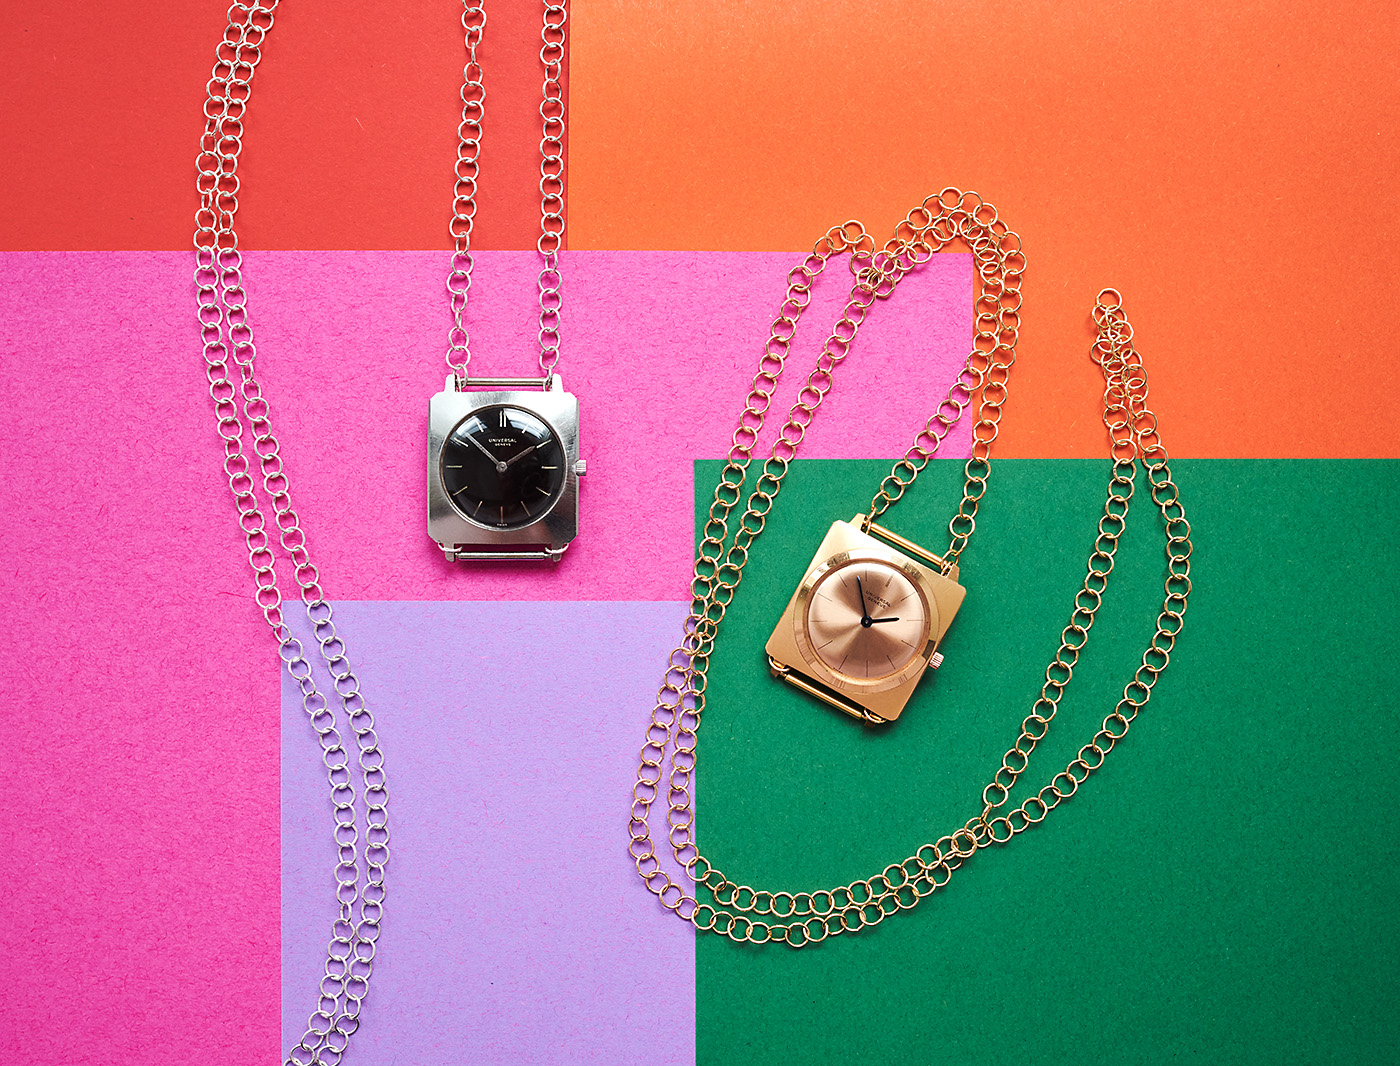 2x universal geneve watch-necklace